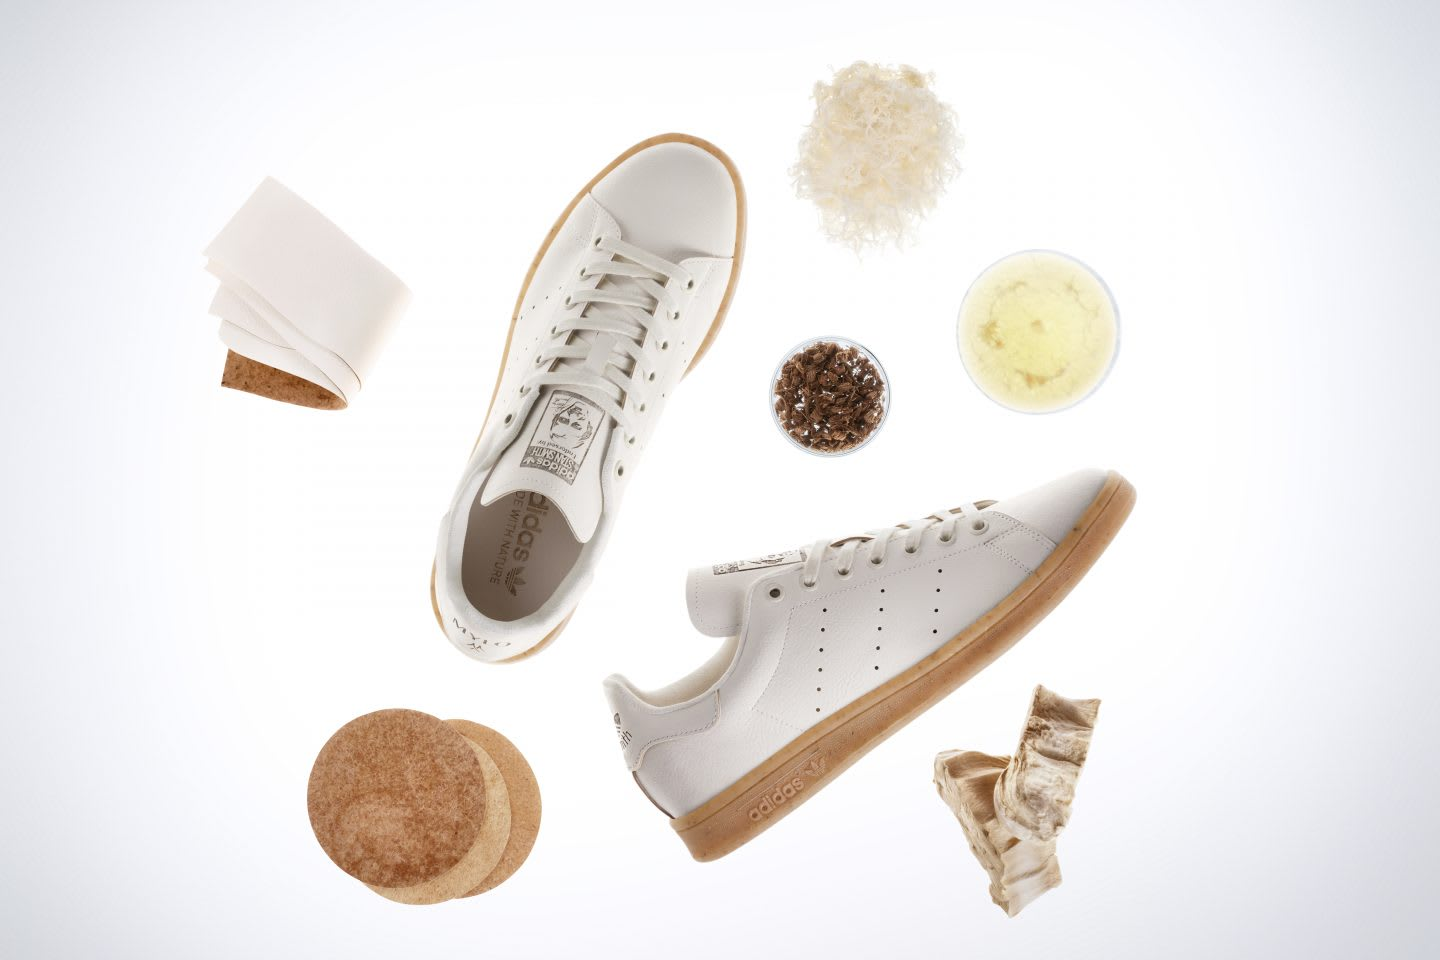 Mylo Stan Smith shoes co-created by Bolt Threads and adidas, partnership, innovation, sustainability, sustainable, ingredients, circularity